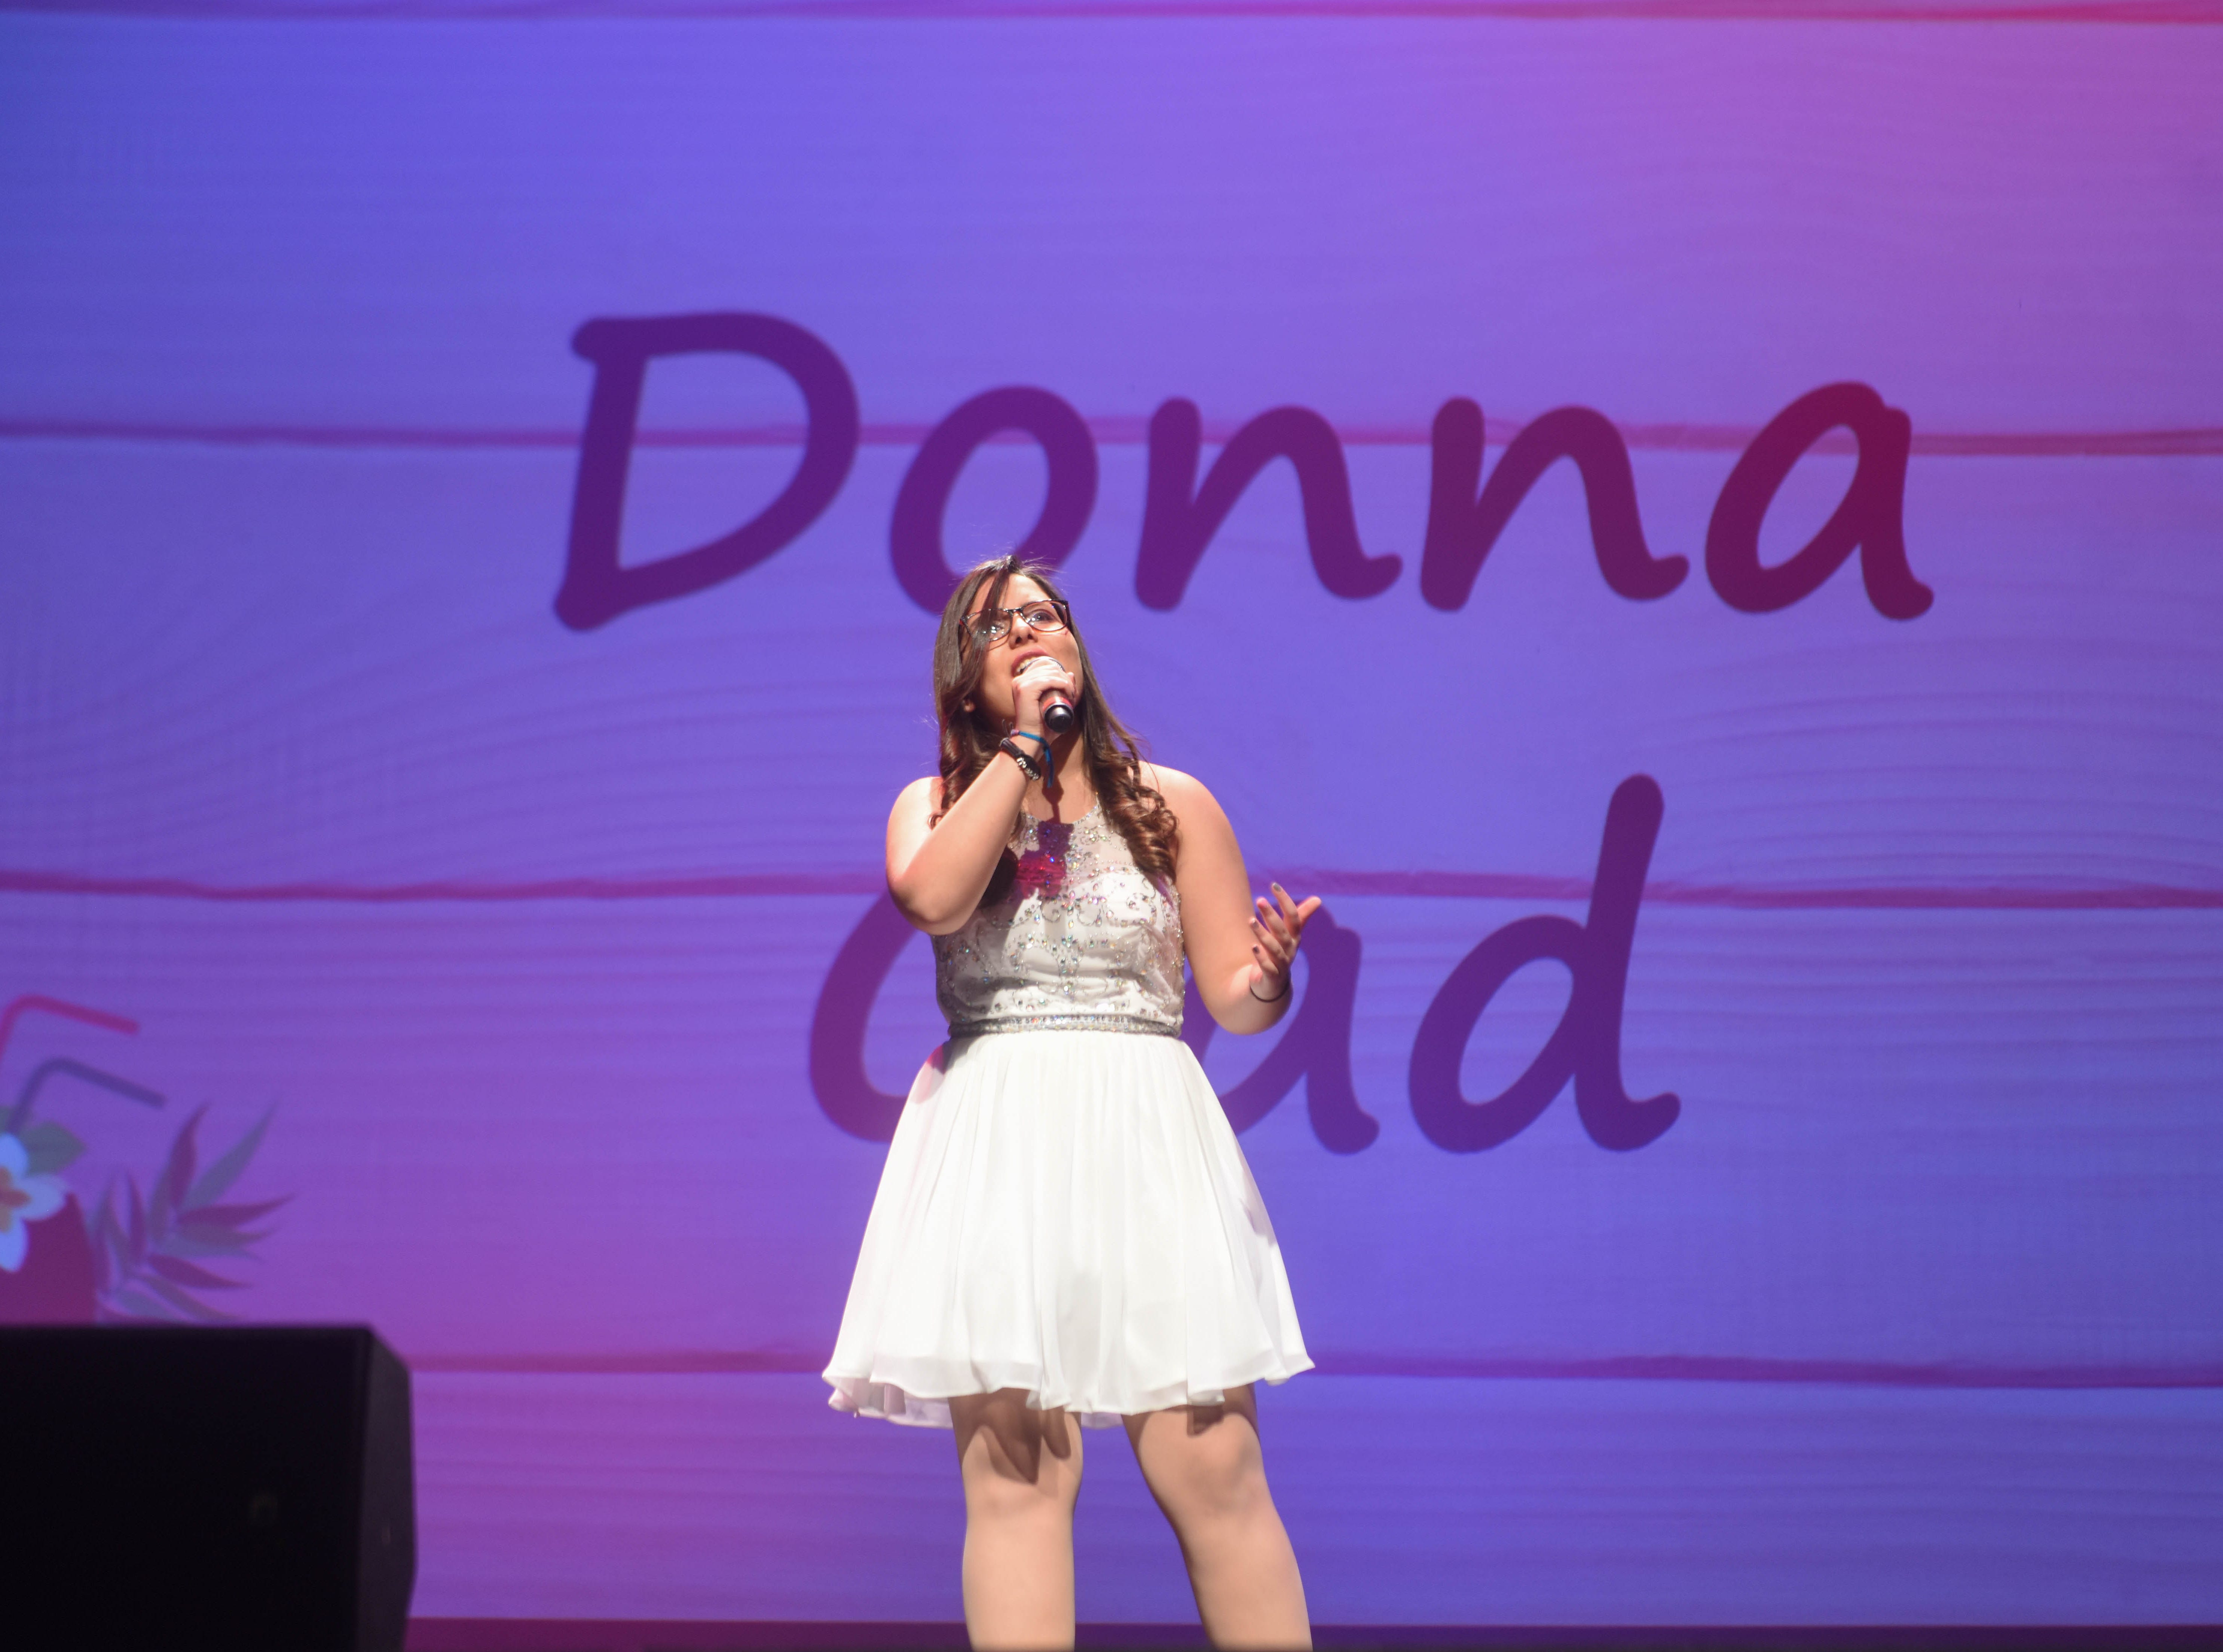 Donna Gad. The 2019 Englewood Idol was held at bergenPAC theater. The singing competition is open to any high school student who currently lives or goes to school in Englewood, NJ. This years winner was Genesis Capellan. 01/11/2019